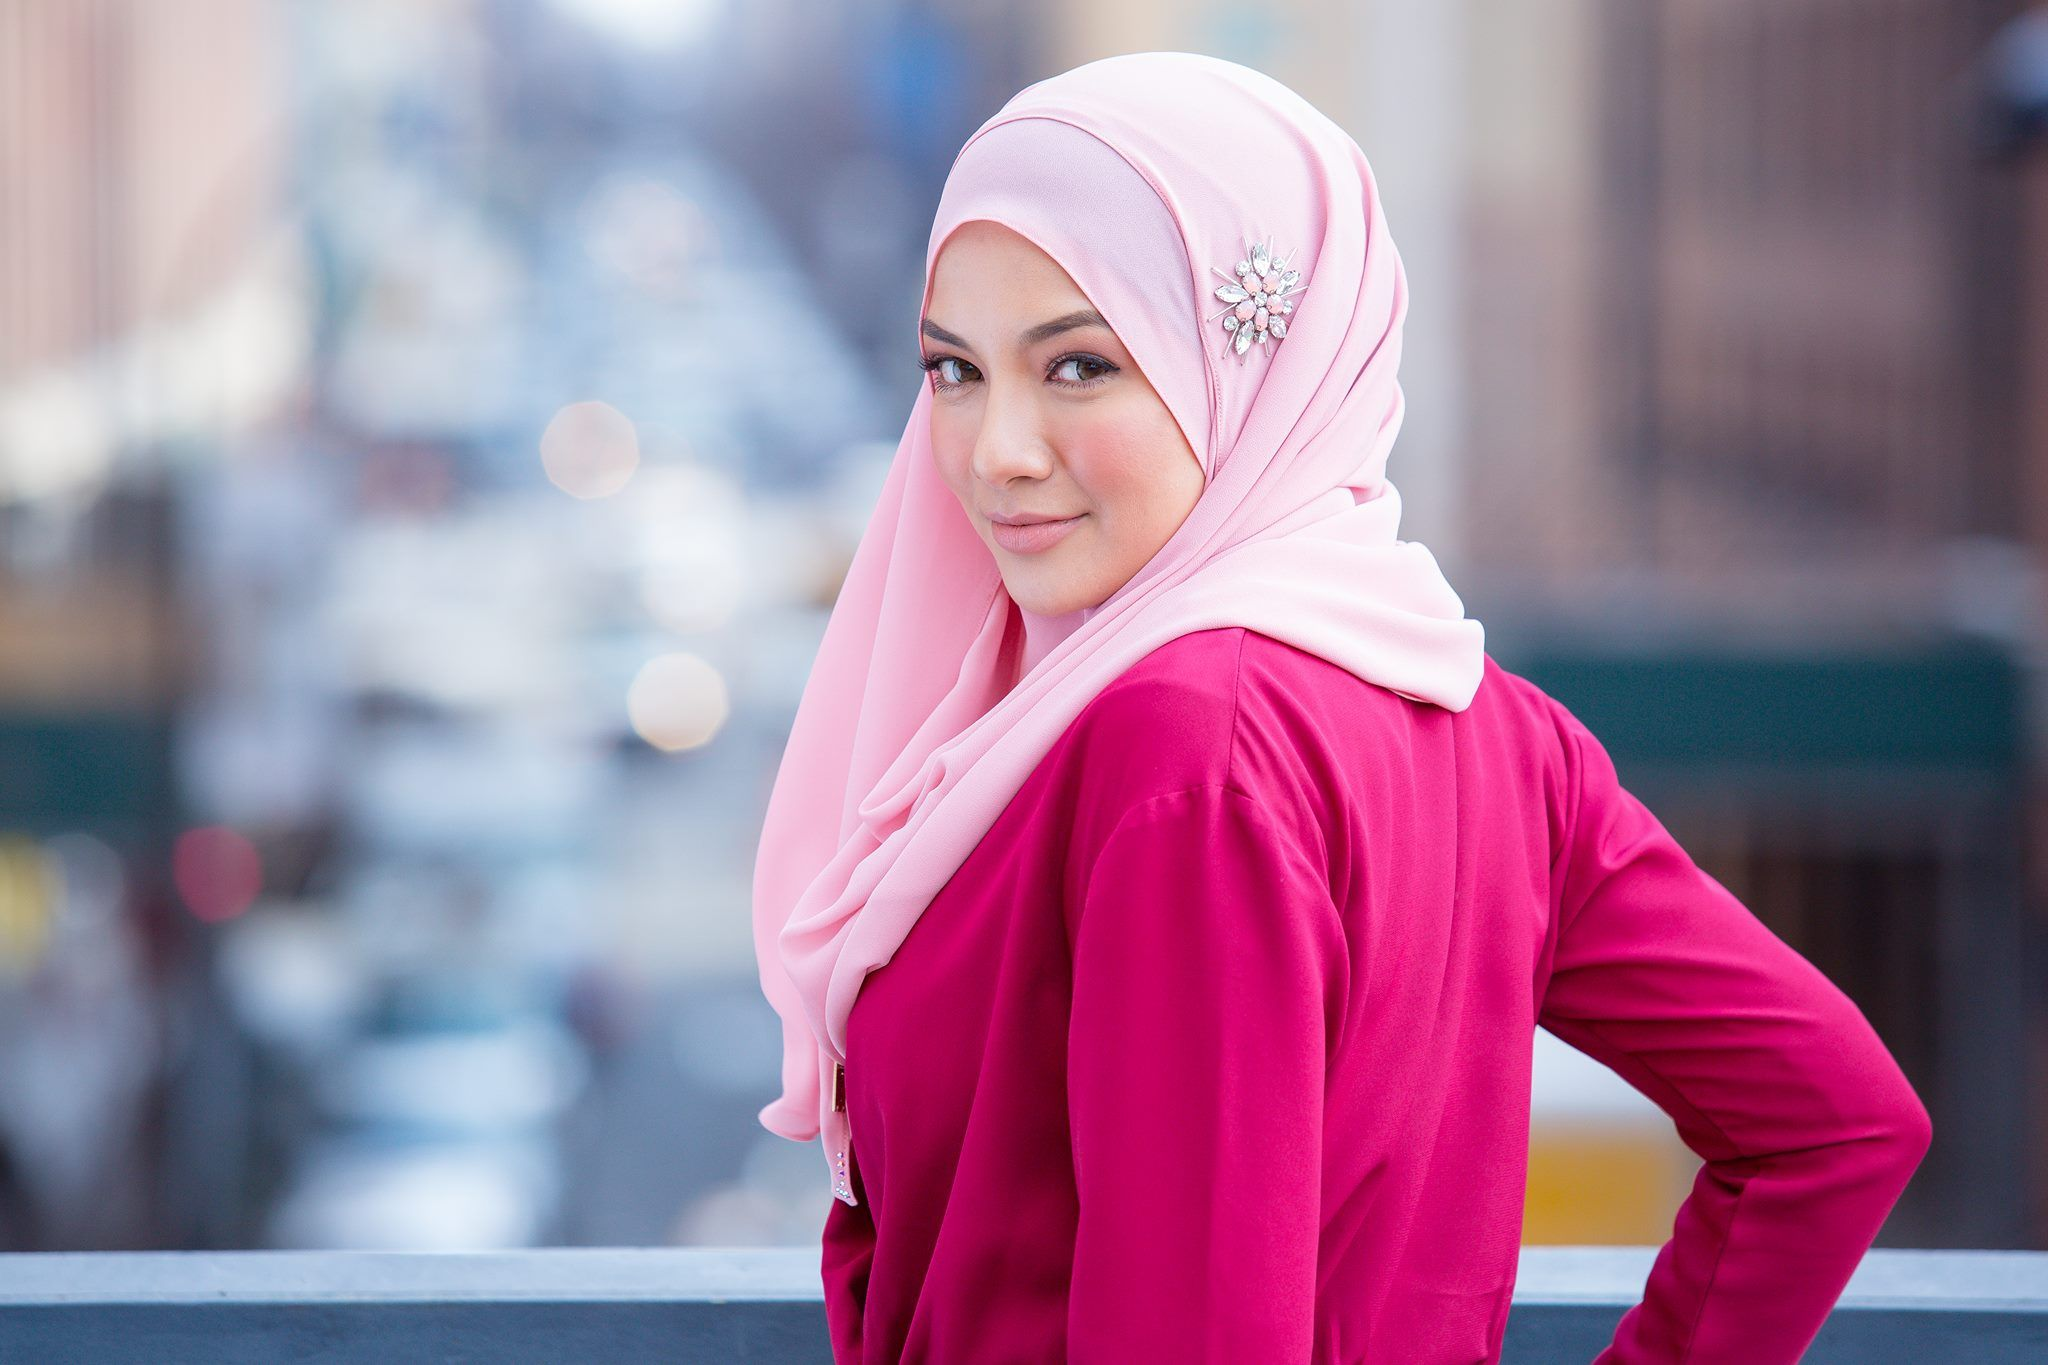 Wallpaper Neelofa in HD  Azhan.co